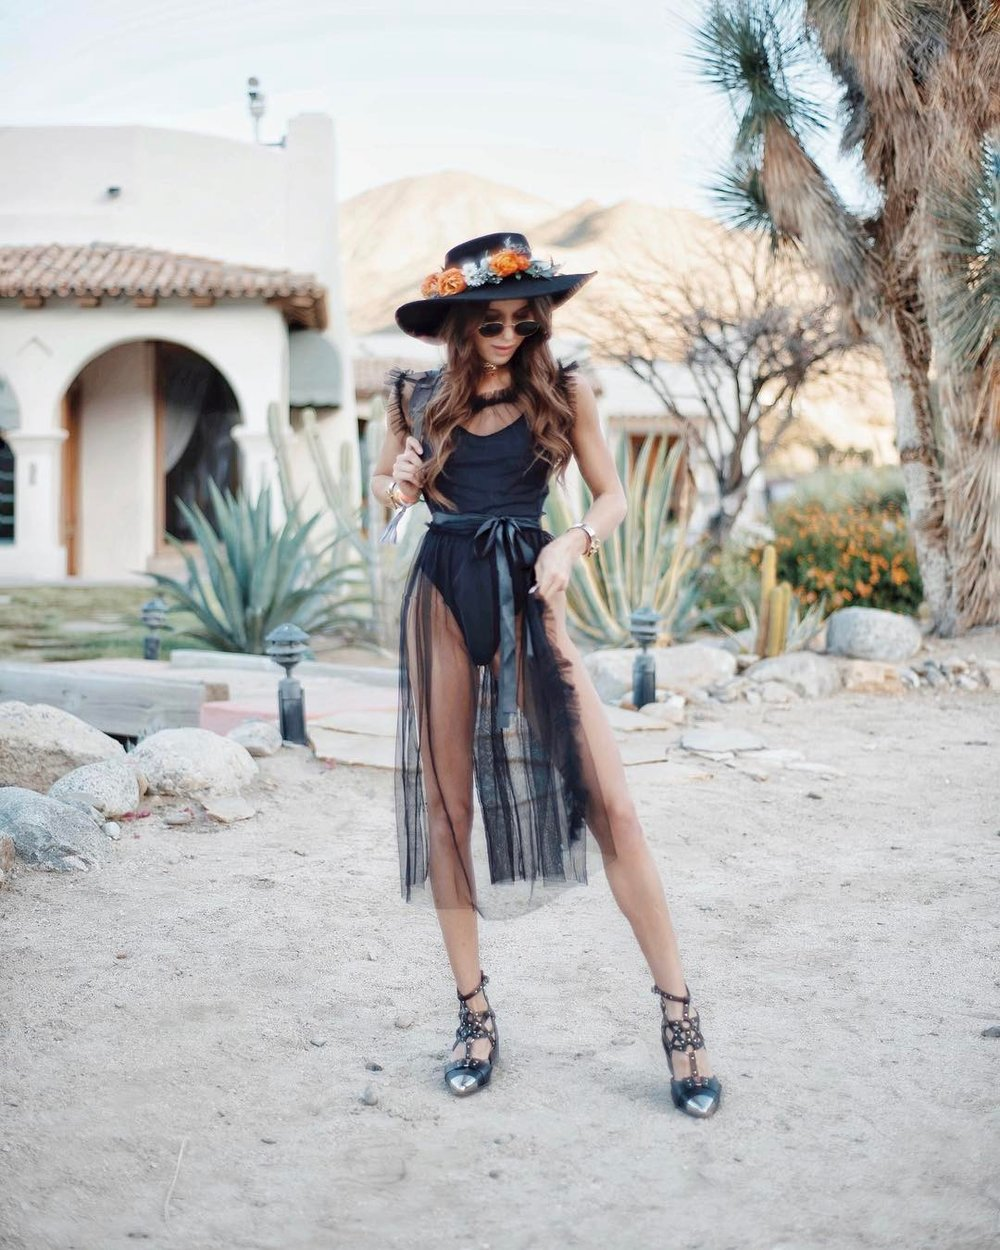 Beautiful Mary Leest. One of the best Coachella looks of 2017.